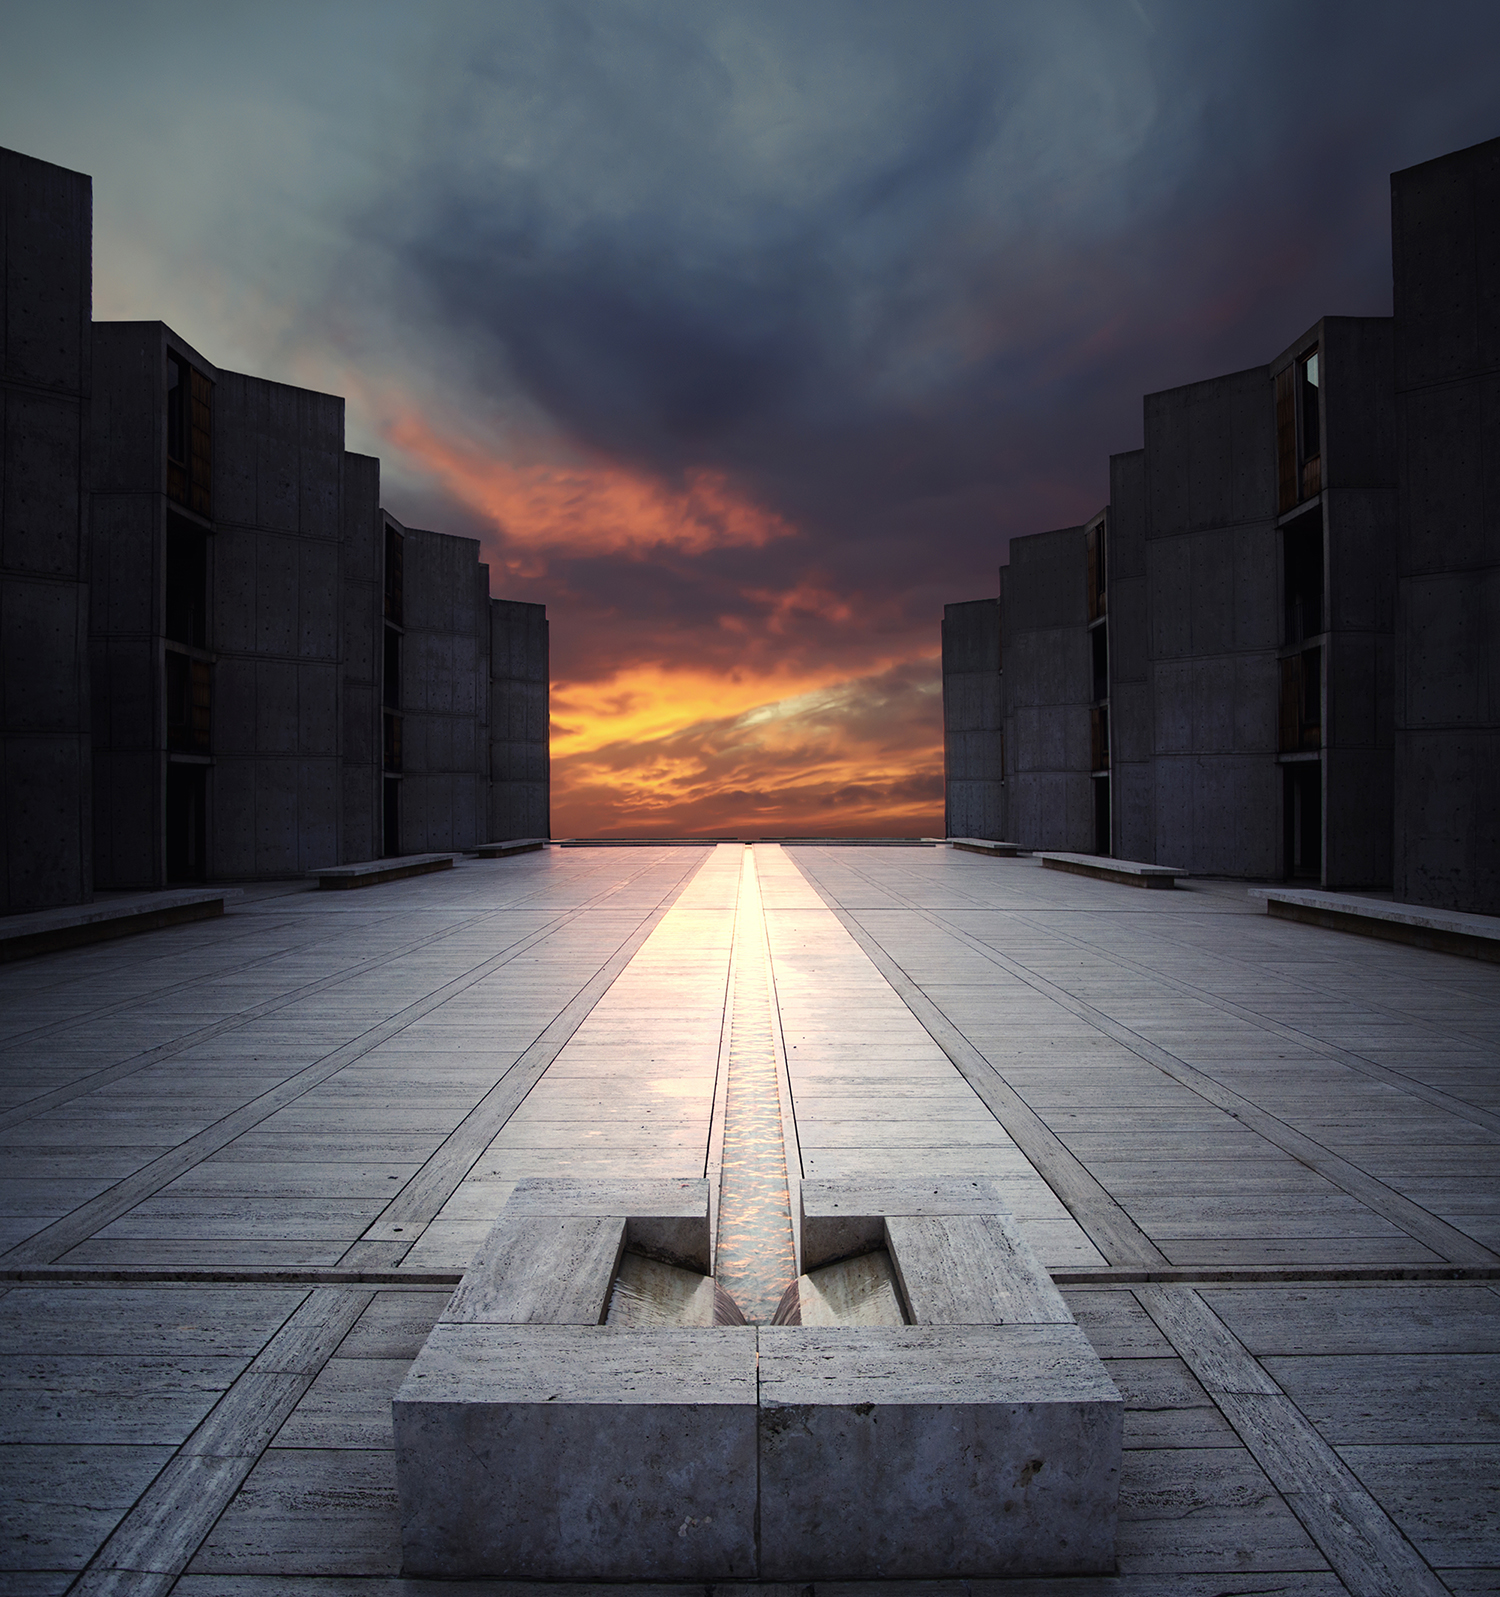 https://www.smithsonianmag.com/photocontest/photo-of-the-day/2013-05-13/salk-institute-in-california-at-sunset/